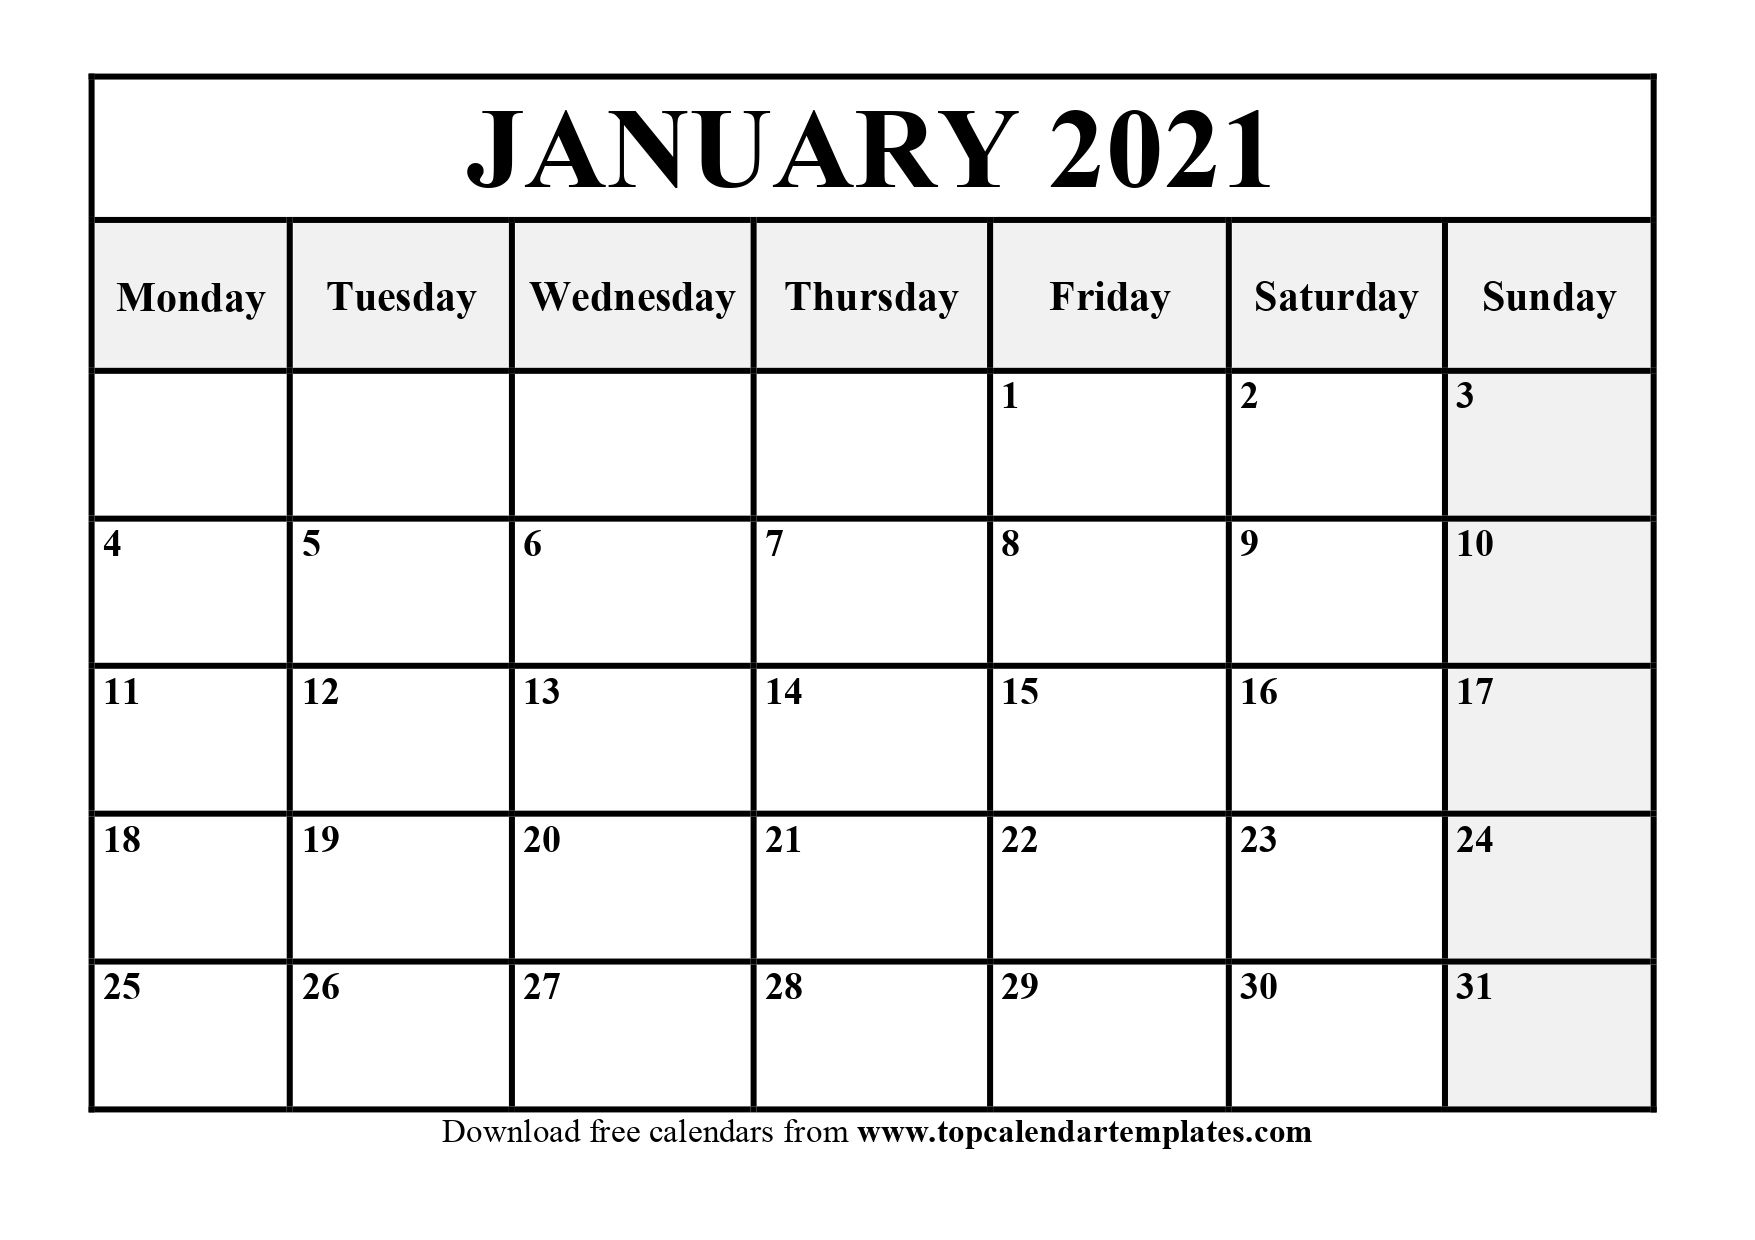 Free January 2021 Calendar Printable (Pdf, Word)